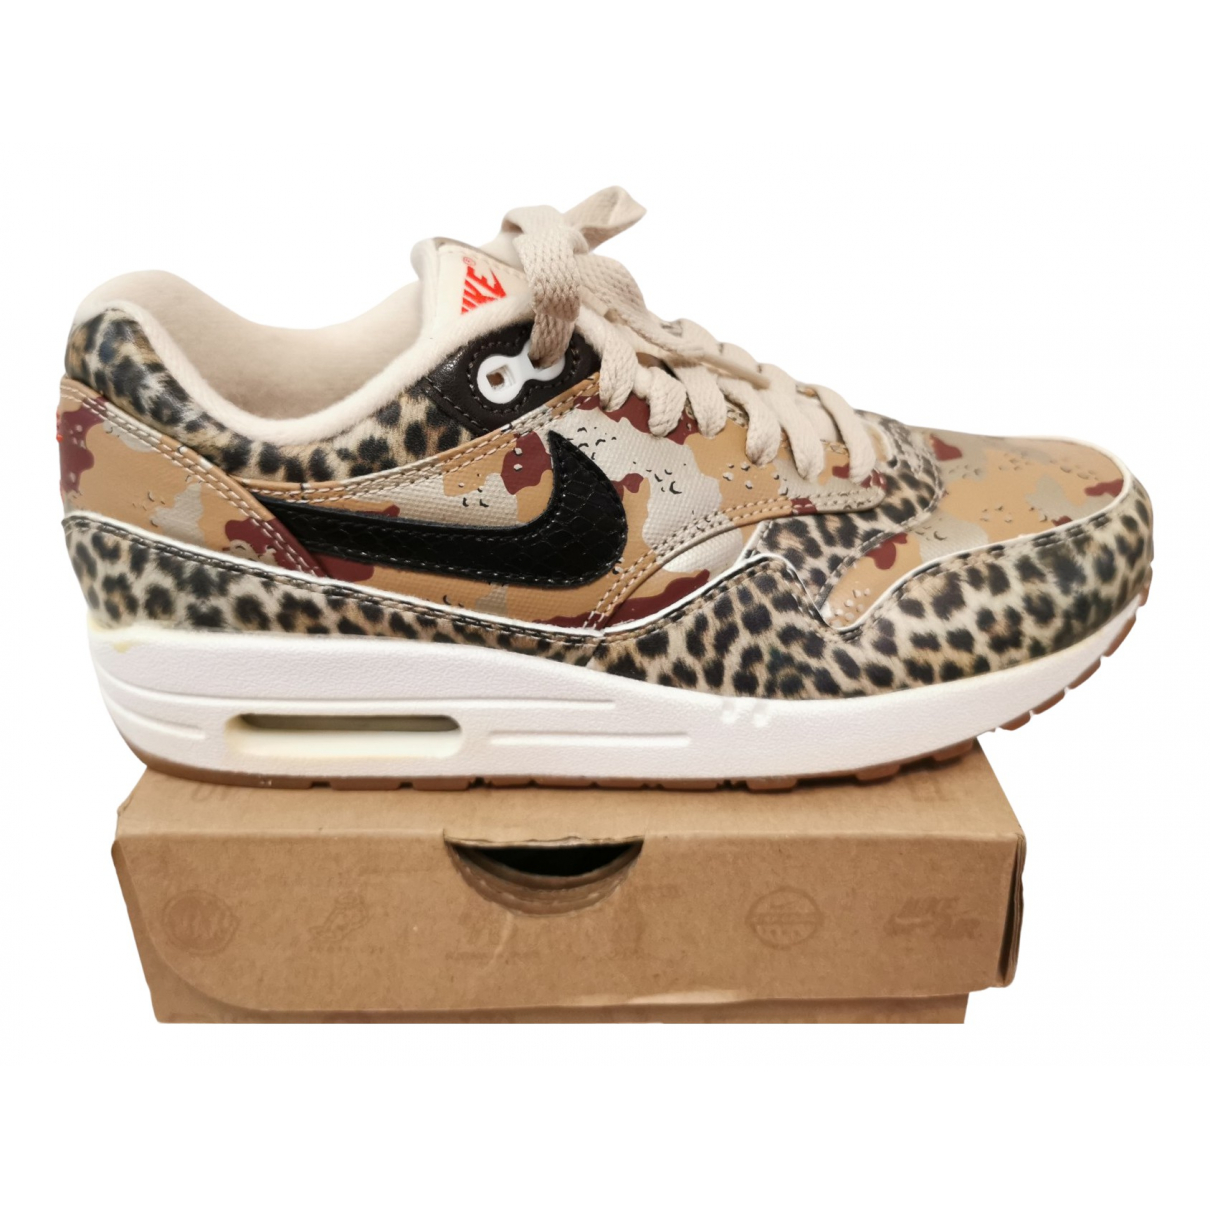 Nike Air Max 1 Multicolour Leather Trainers for Women 7 US